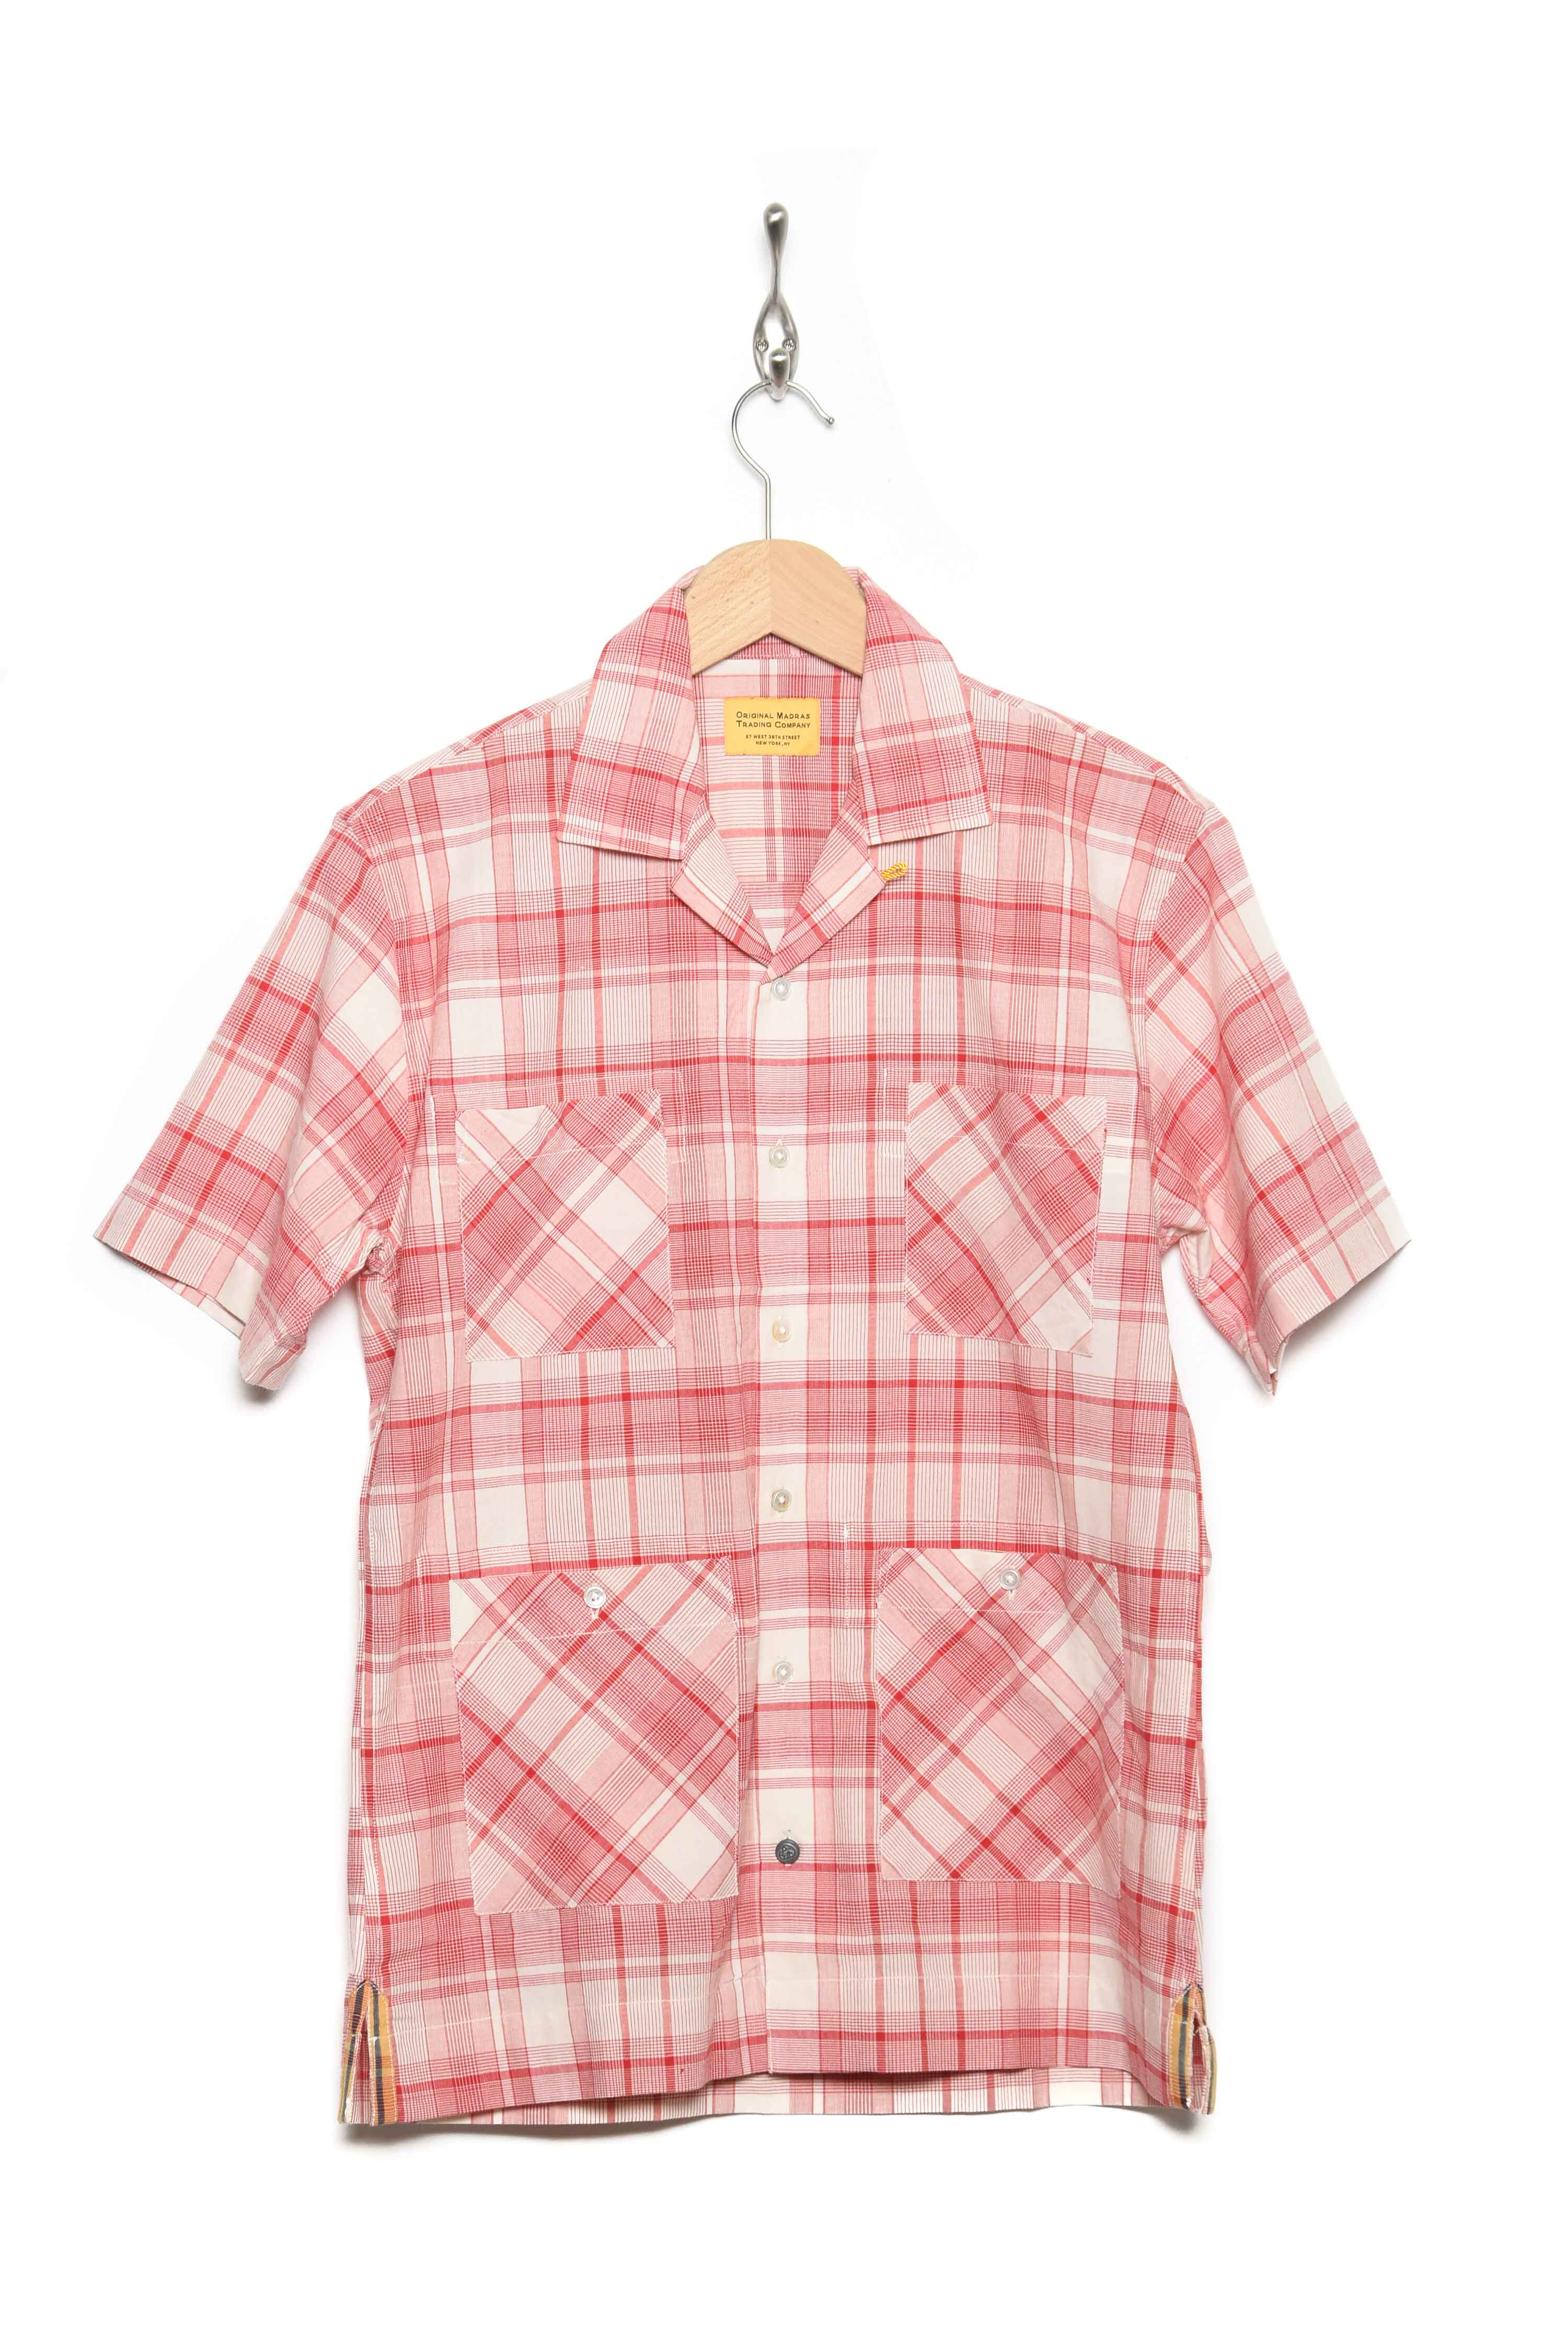 Short Sleeve red check